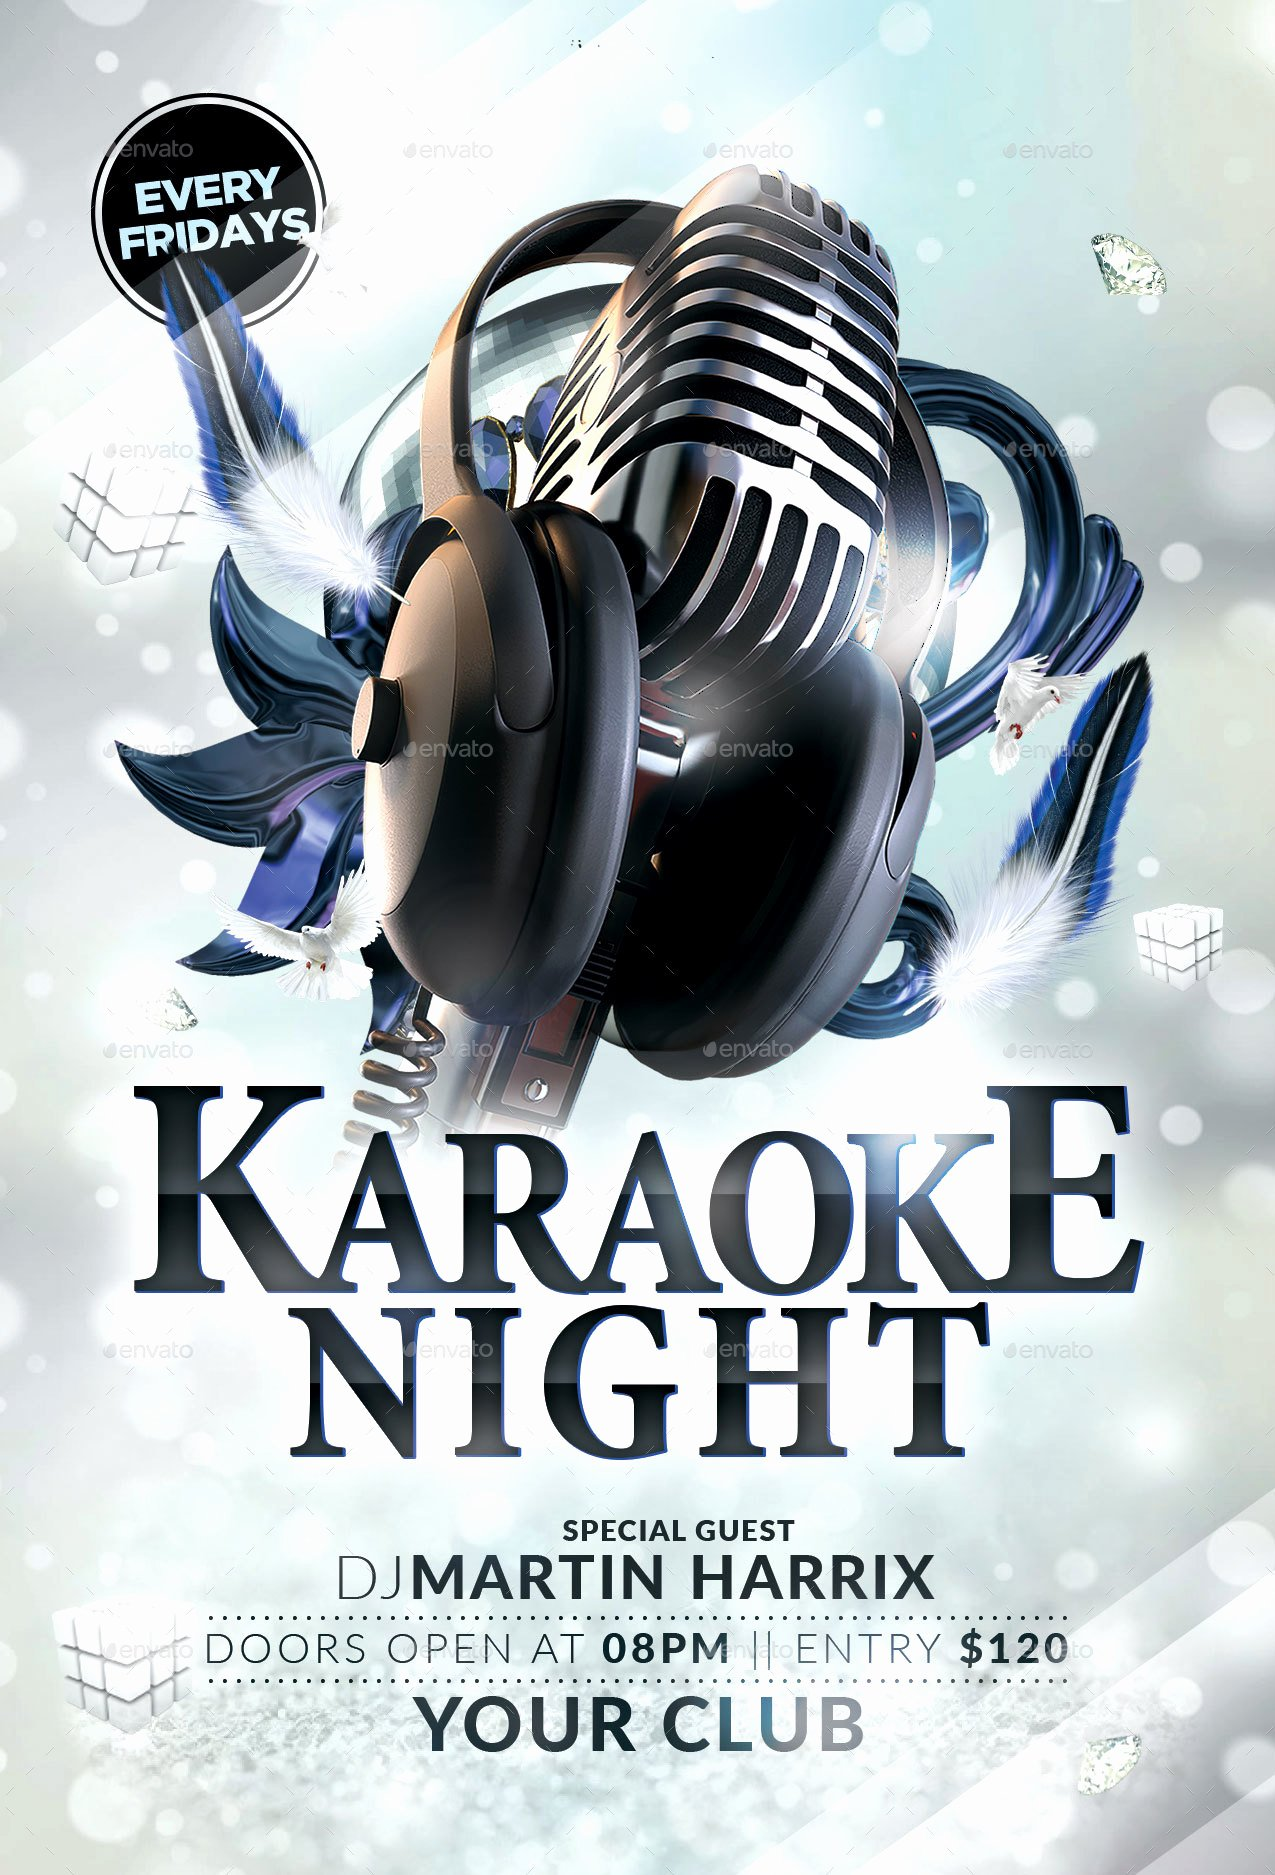 Karaoke Night Flyer Best Of Karaoke Night Flyer by Hedygraphics